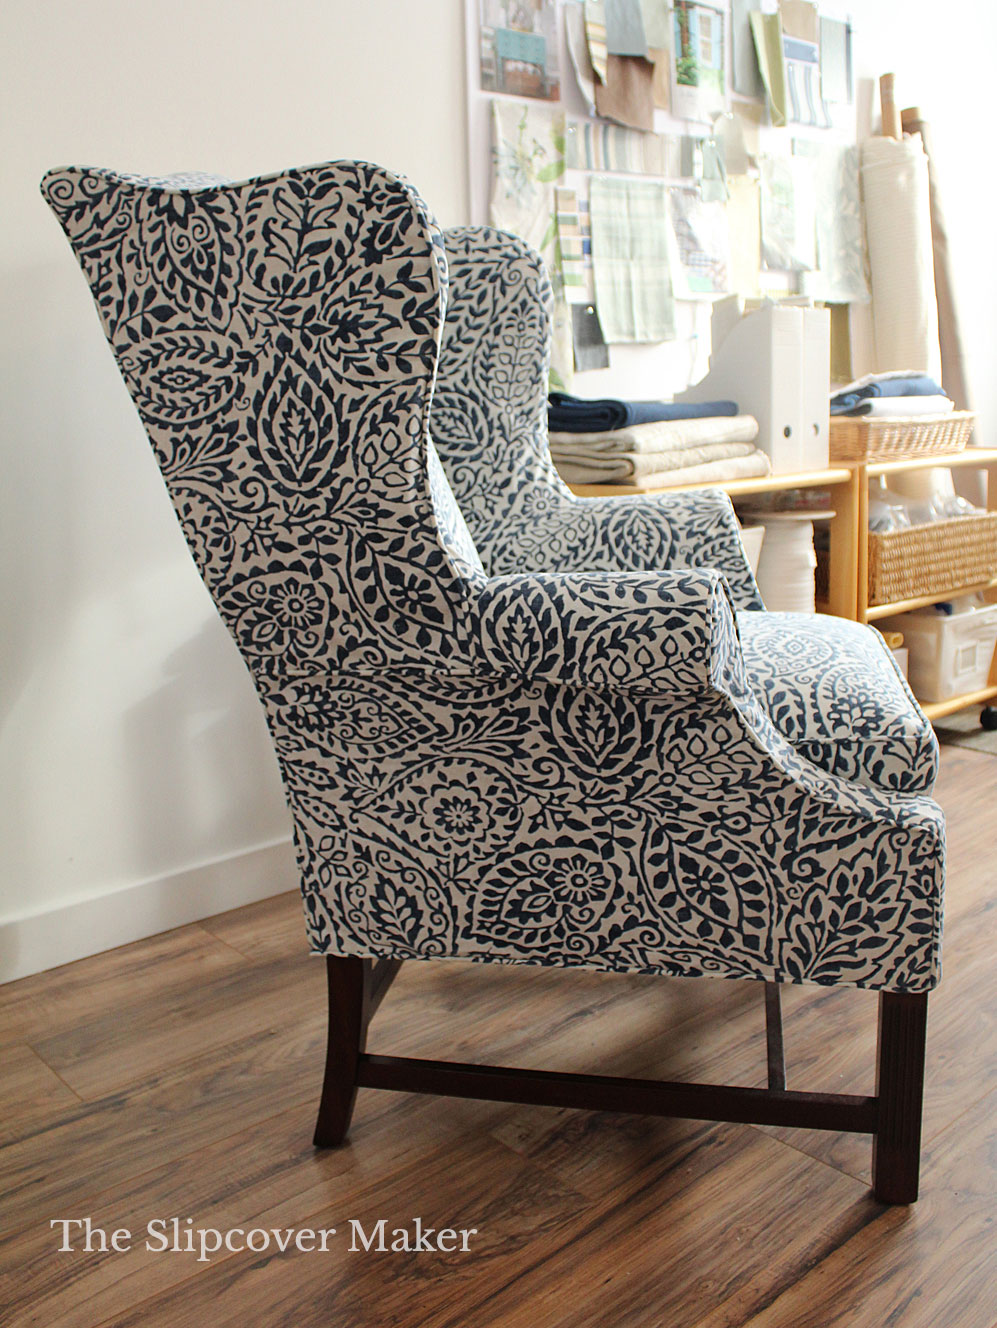 A Simple Slipcover Fix for a Complicated Wing Back Chair